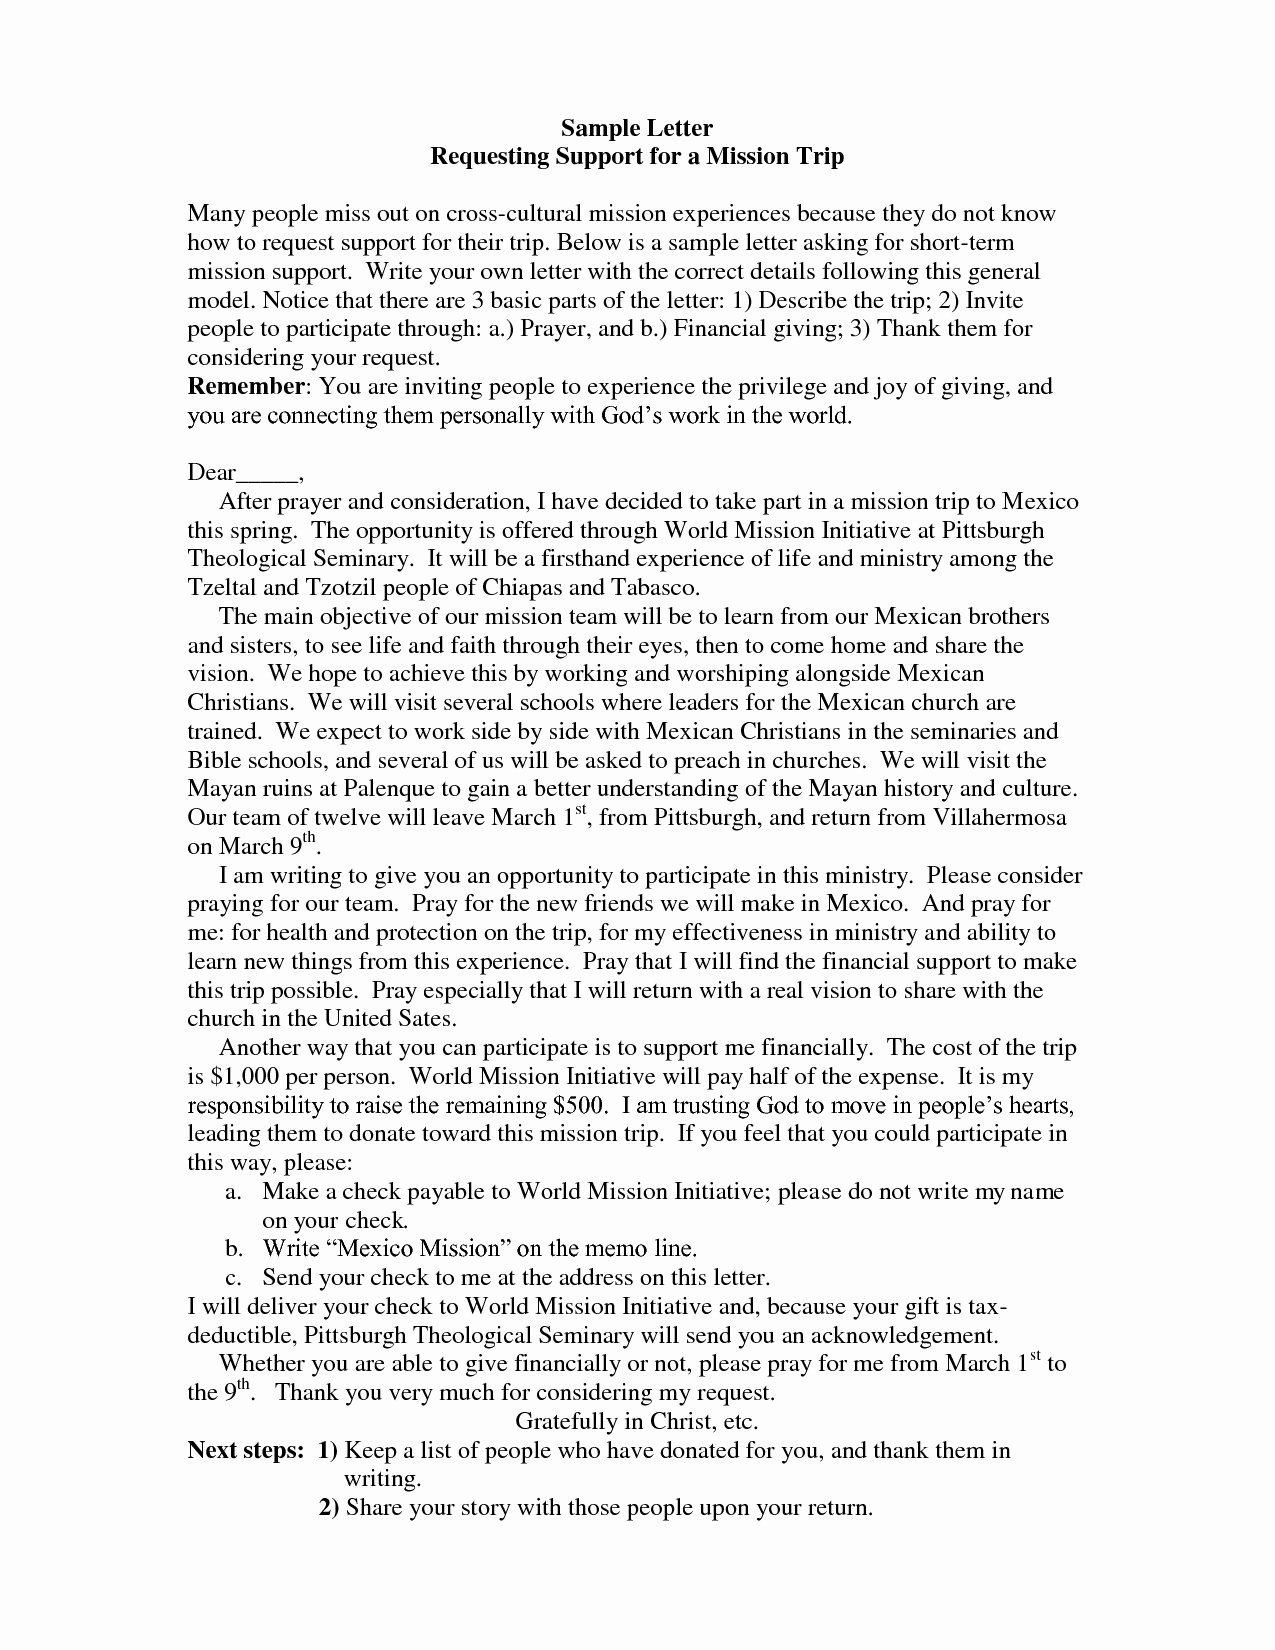 Mission Trip Donation Letter Inspirational Template for Mission Trip Support Letter Samples